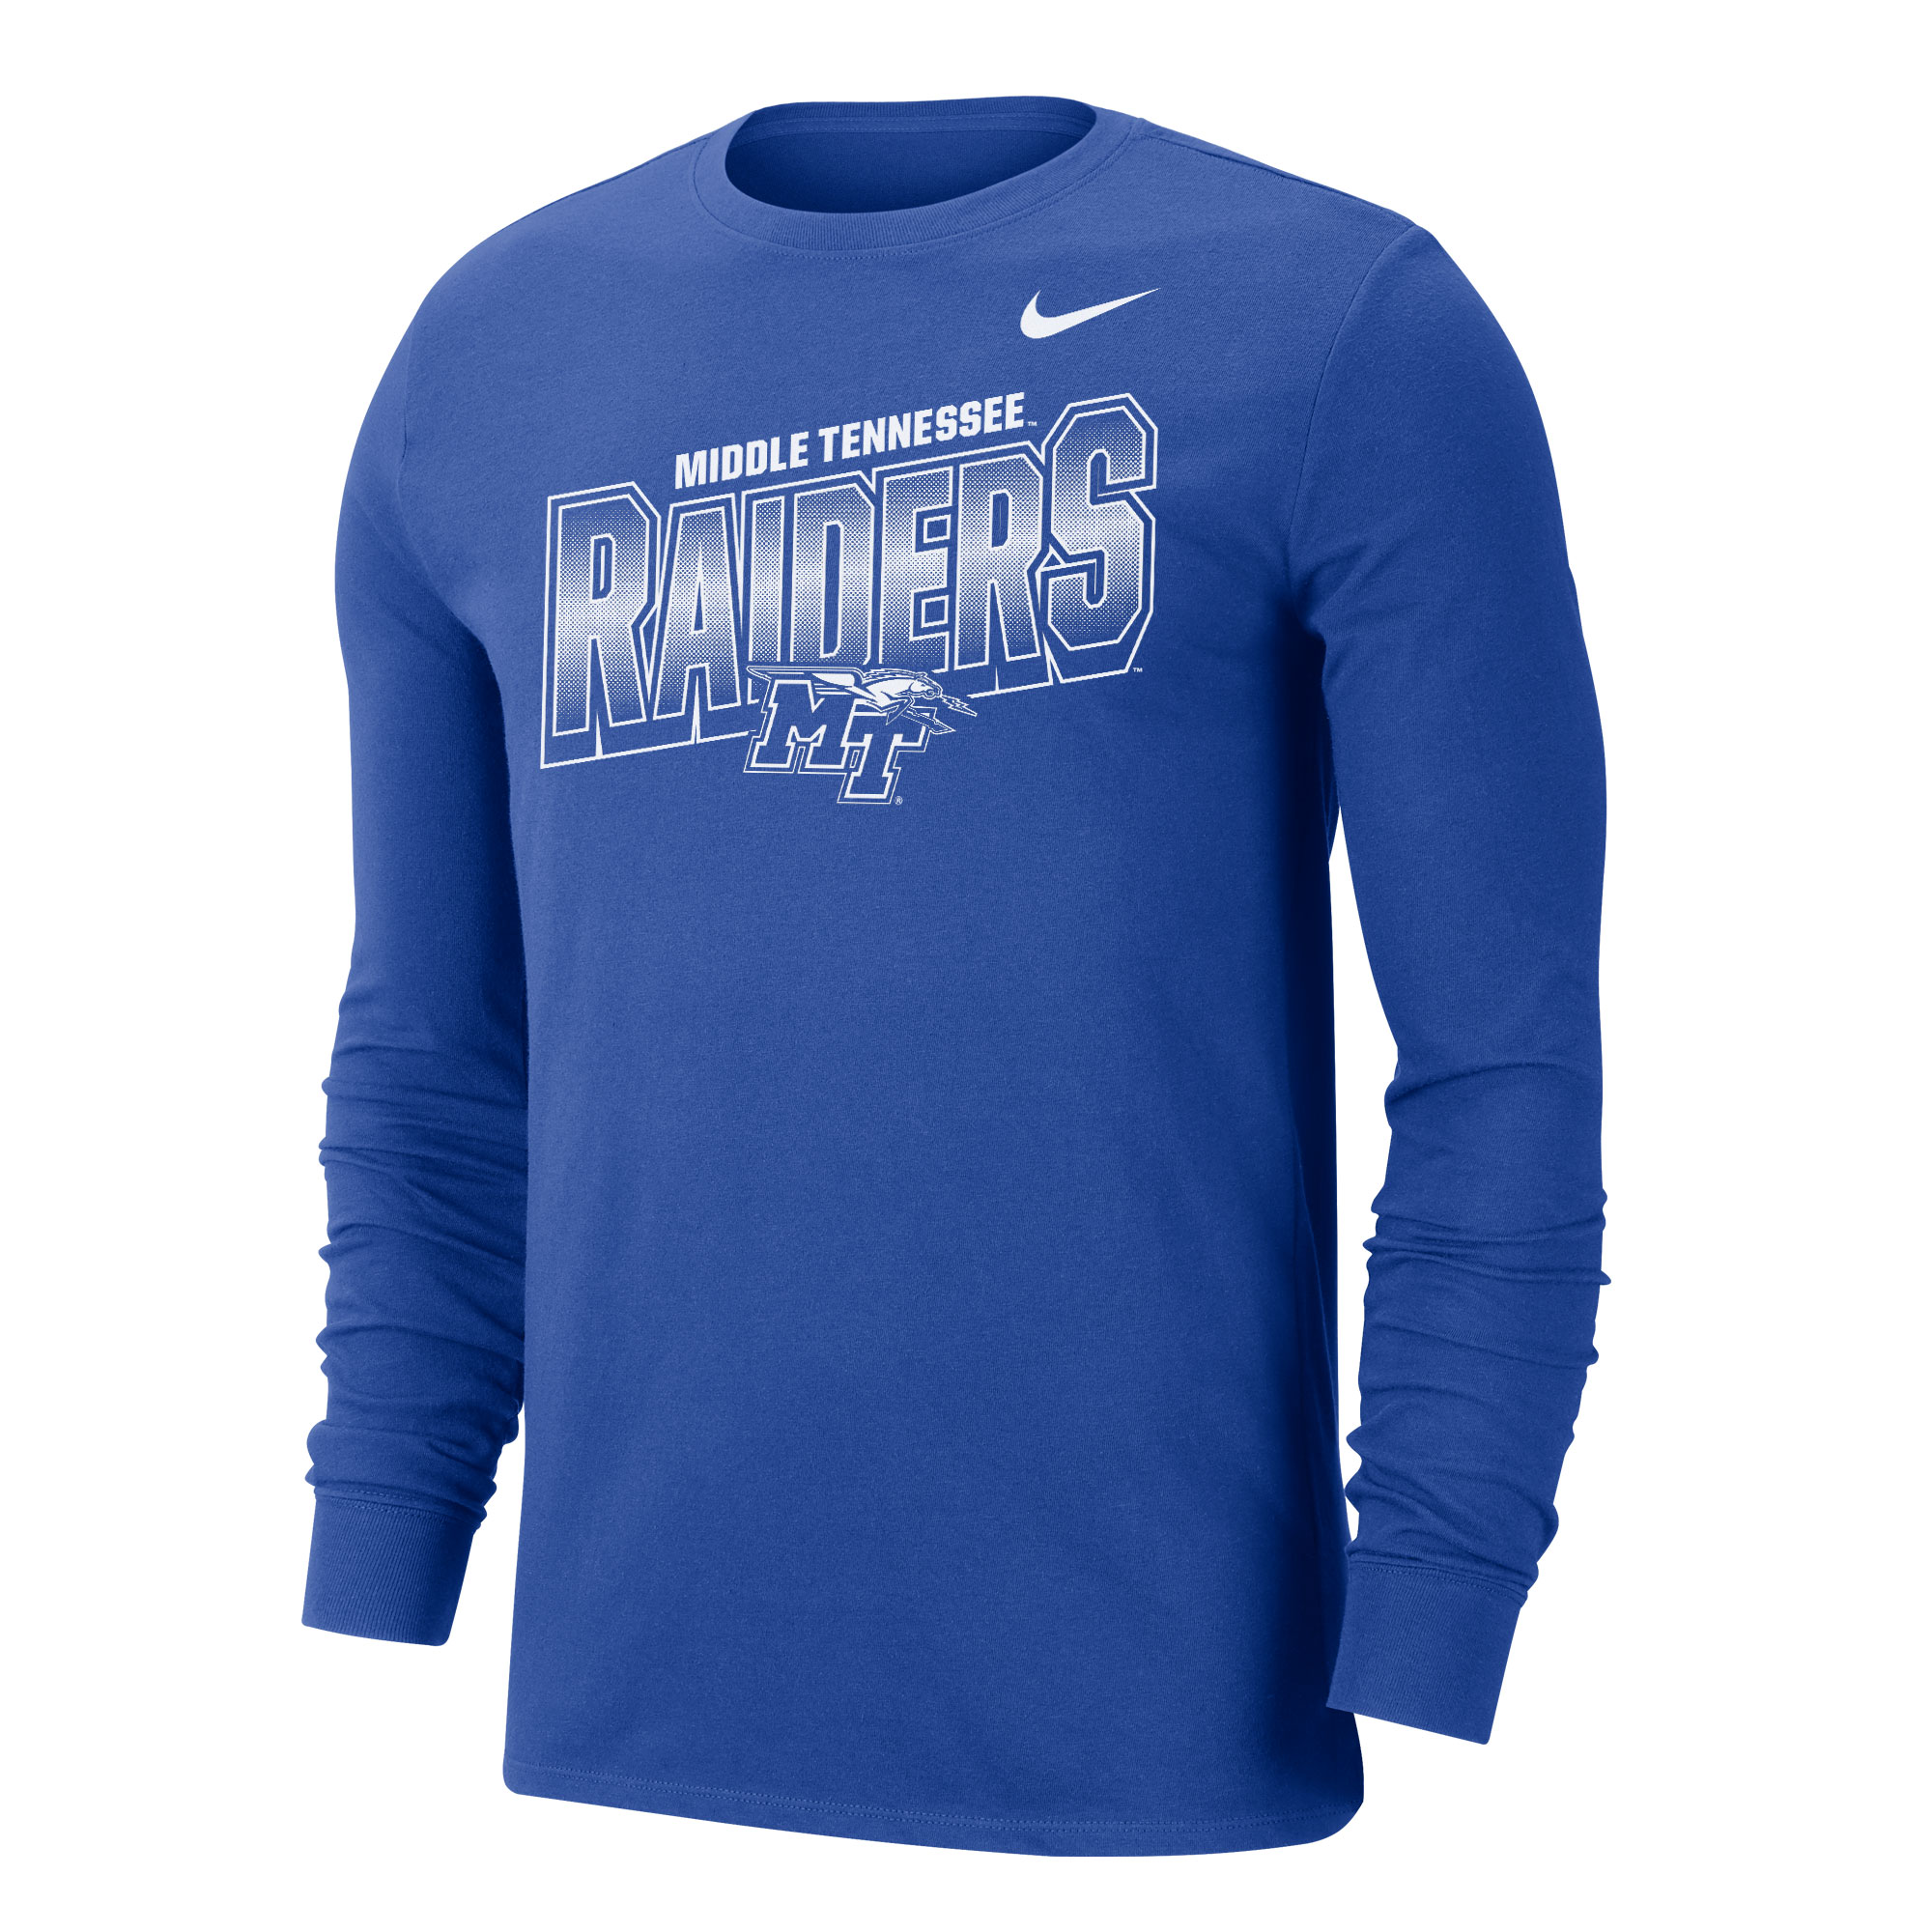 Middle Tennessee Raiders Nike® Dri-Fit Cotton Long Sleeve Shirt